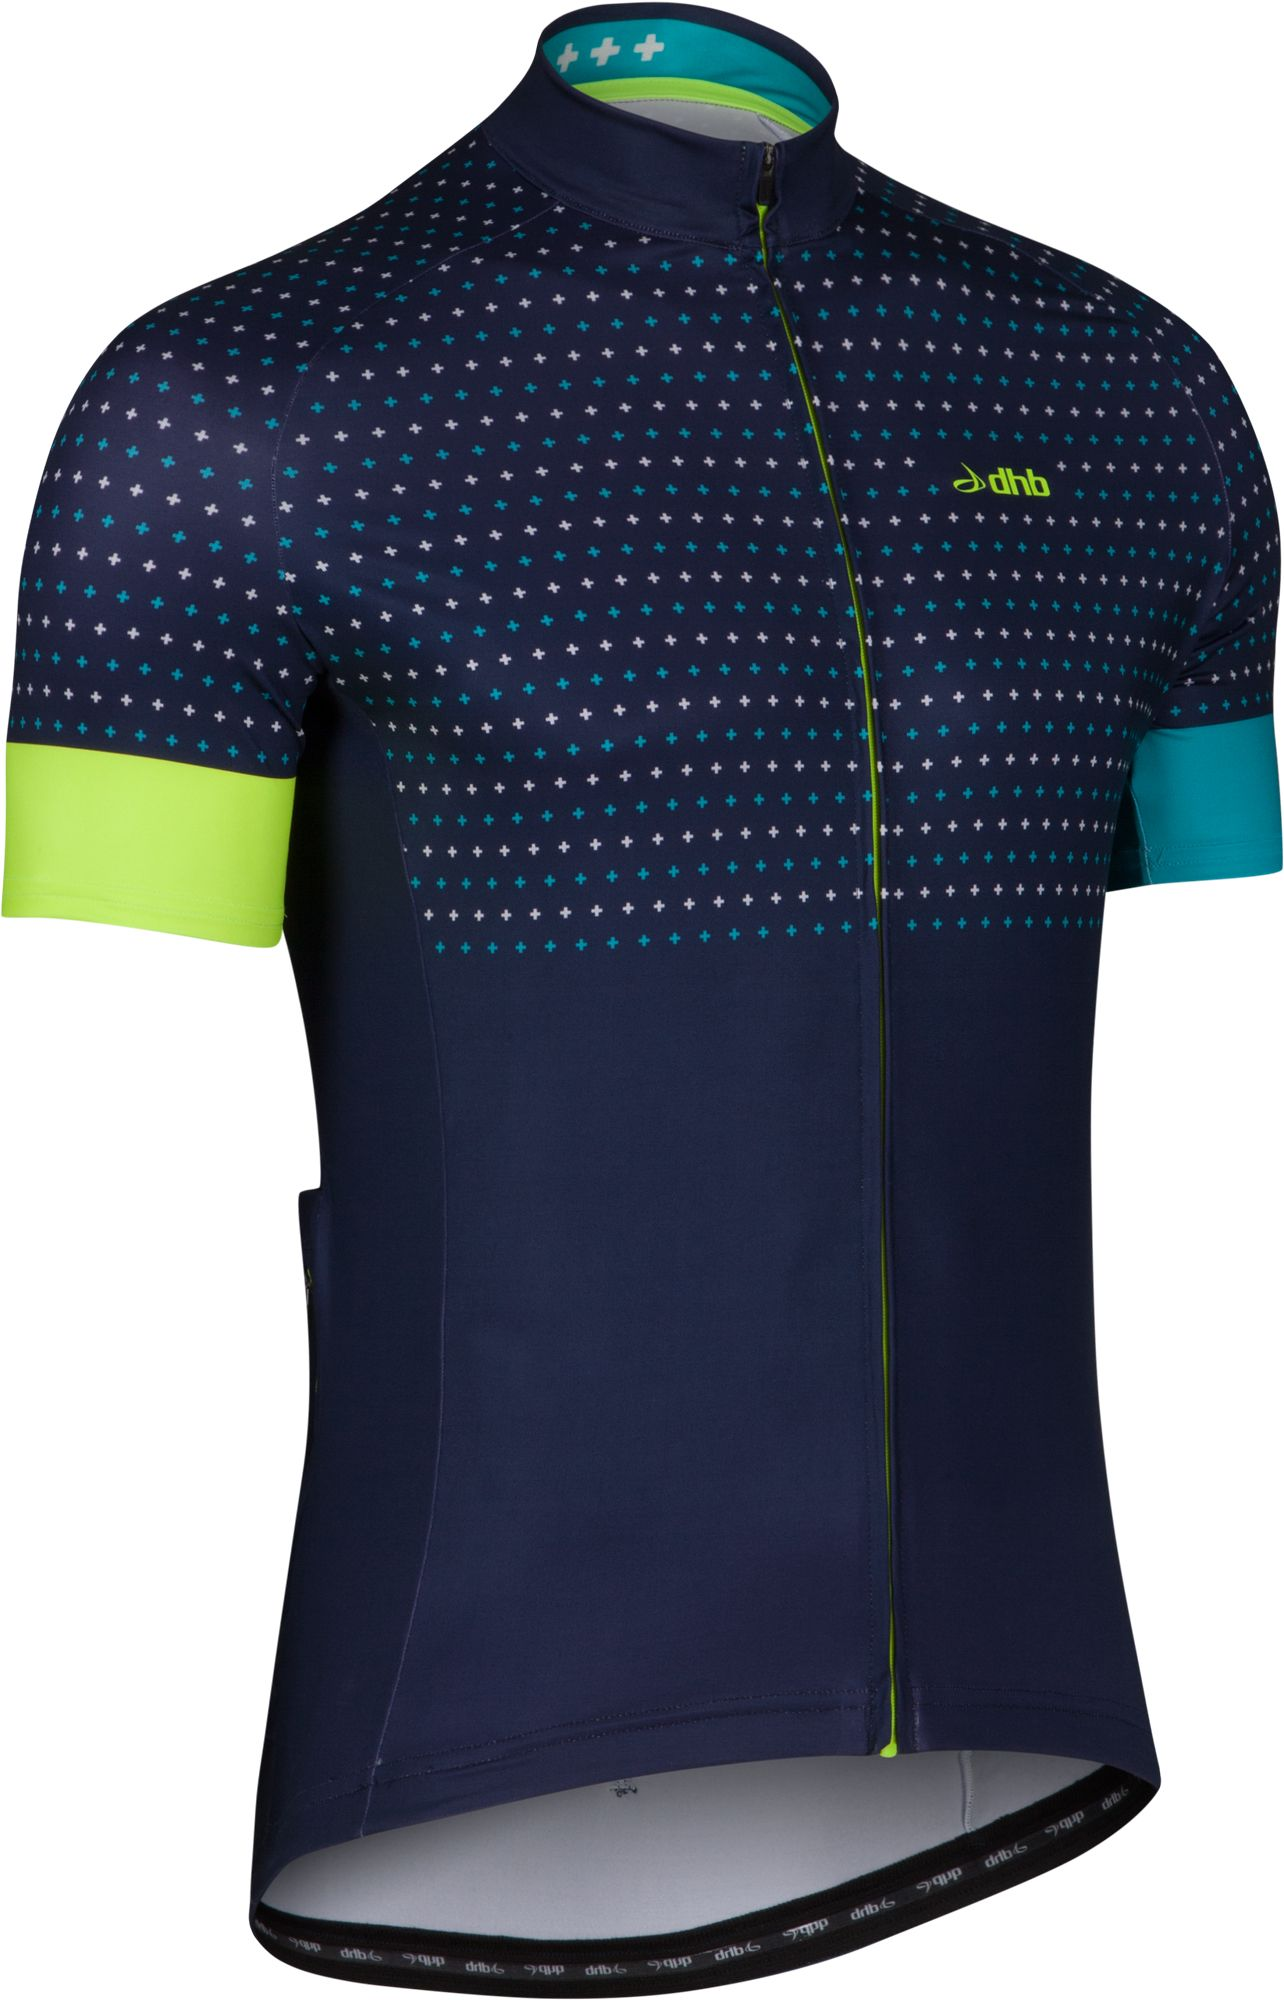 BikeMondo is the authorized seller for Aerospoke Apparel and Cycling Gear. aaafa579d